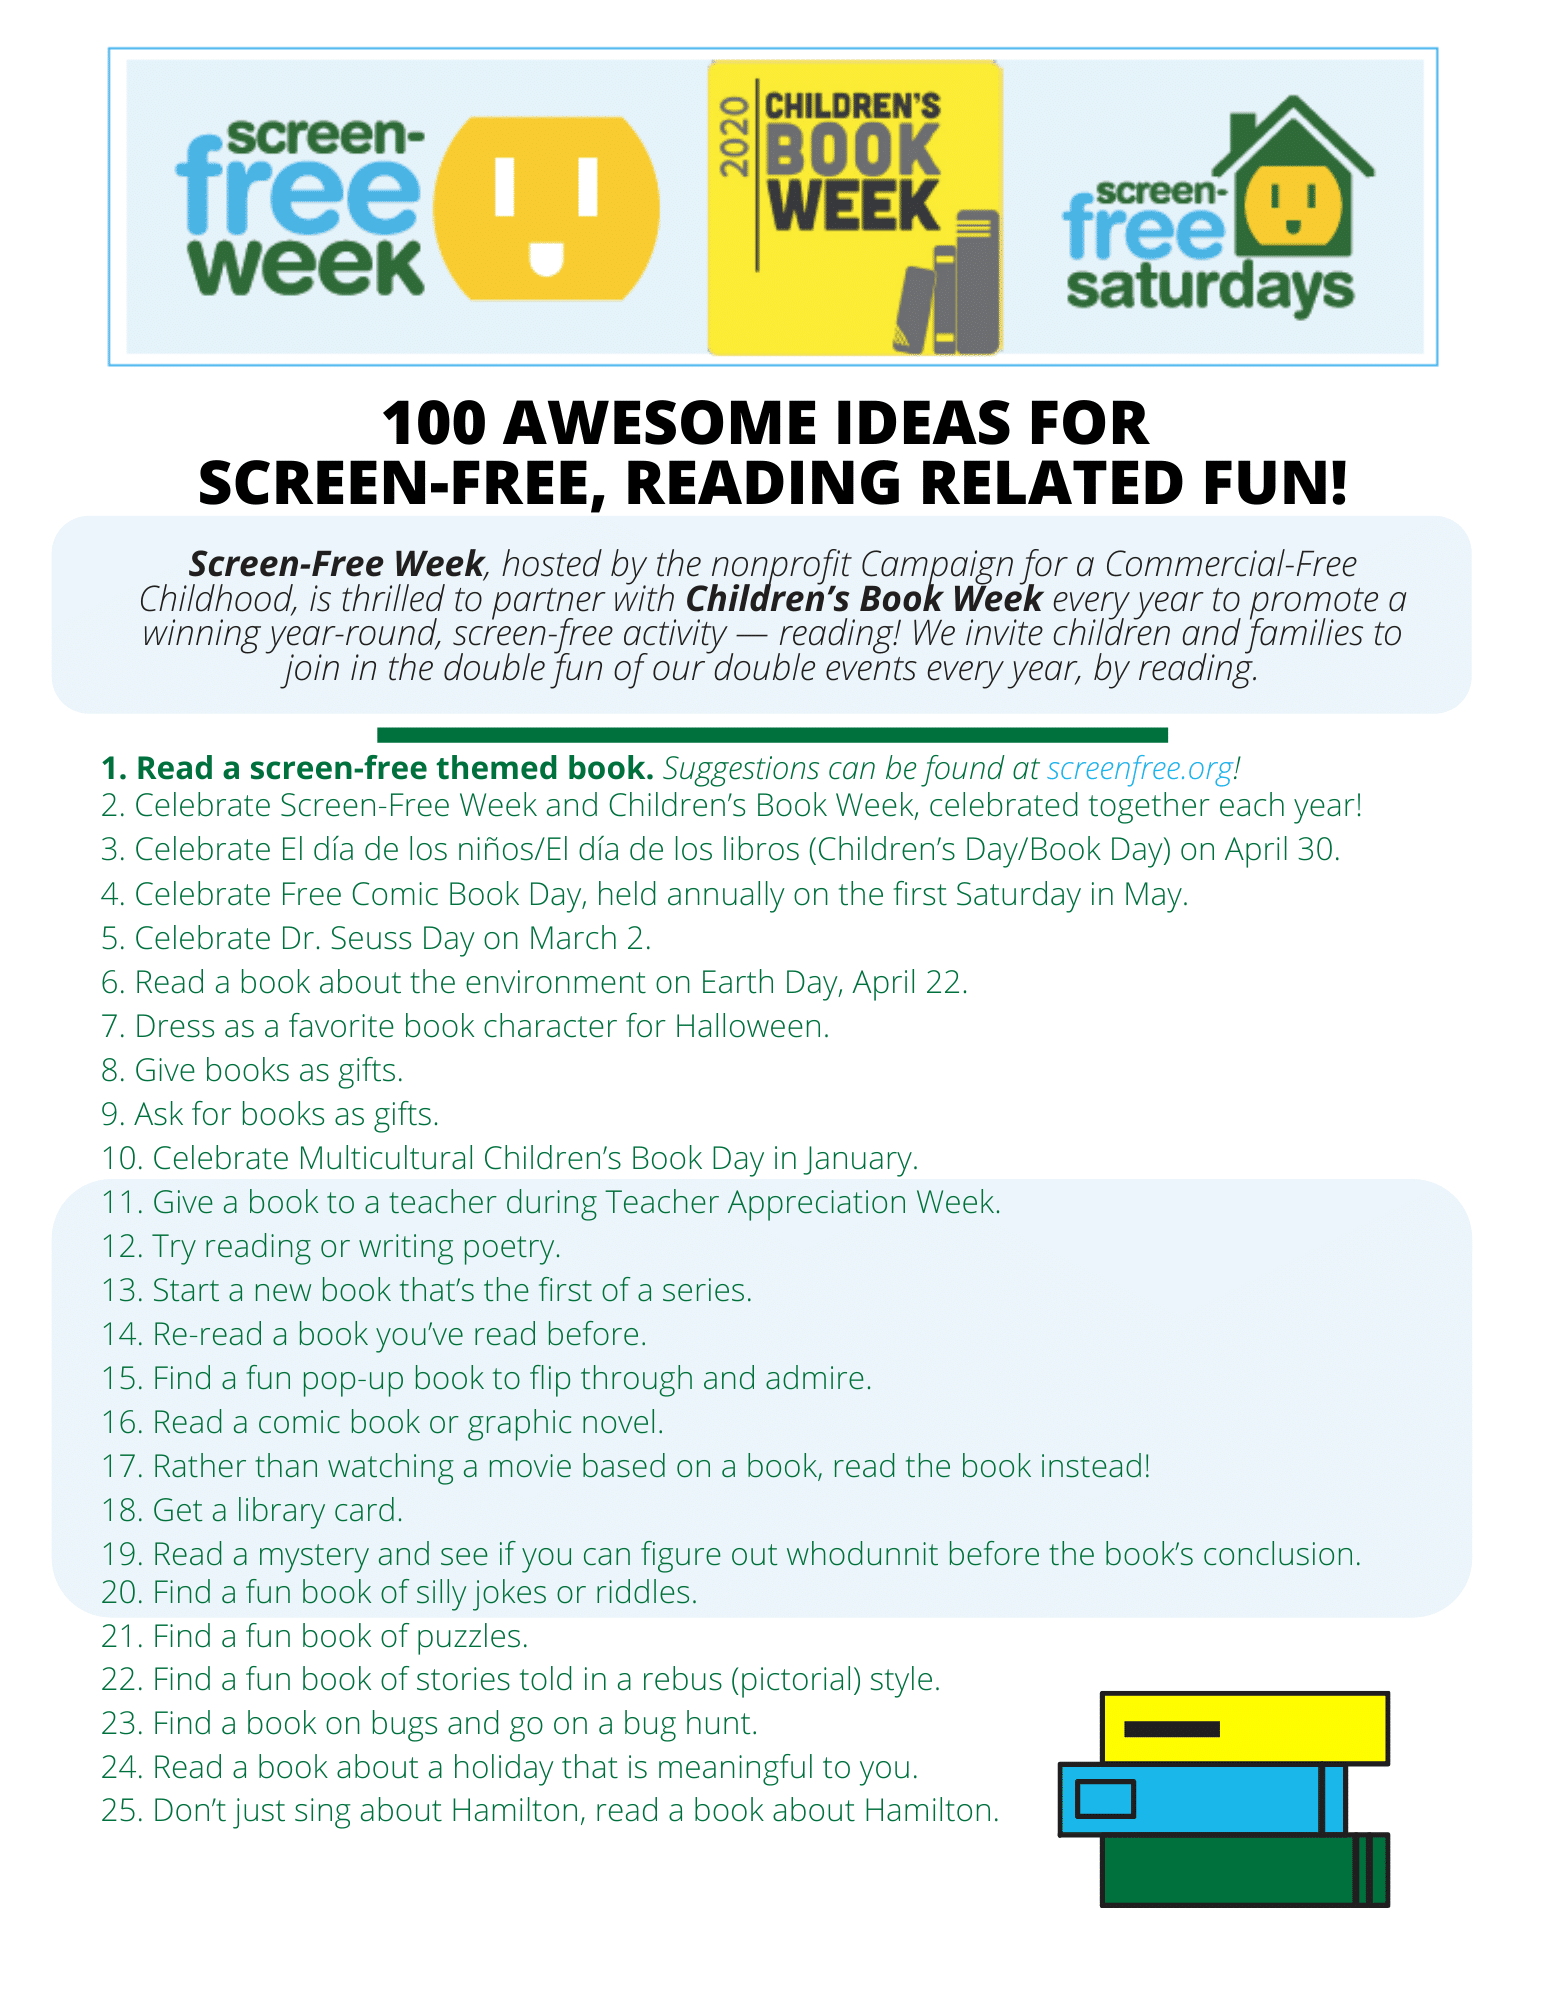 - 100 Screen-Free, Reading-Related Activities - Screen-Free Week